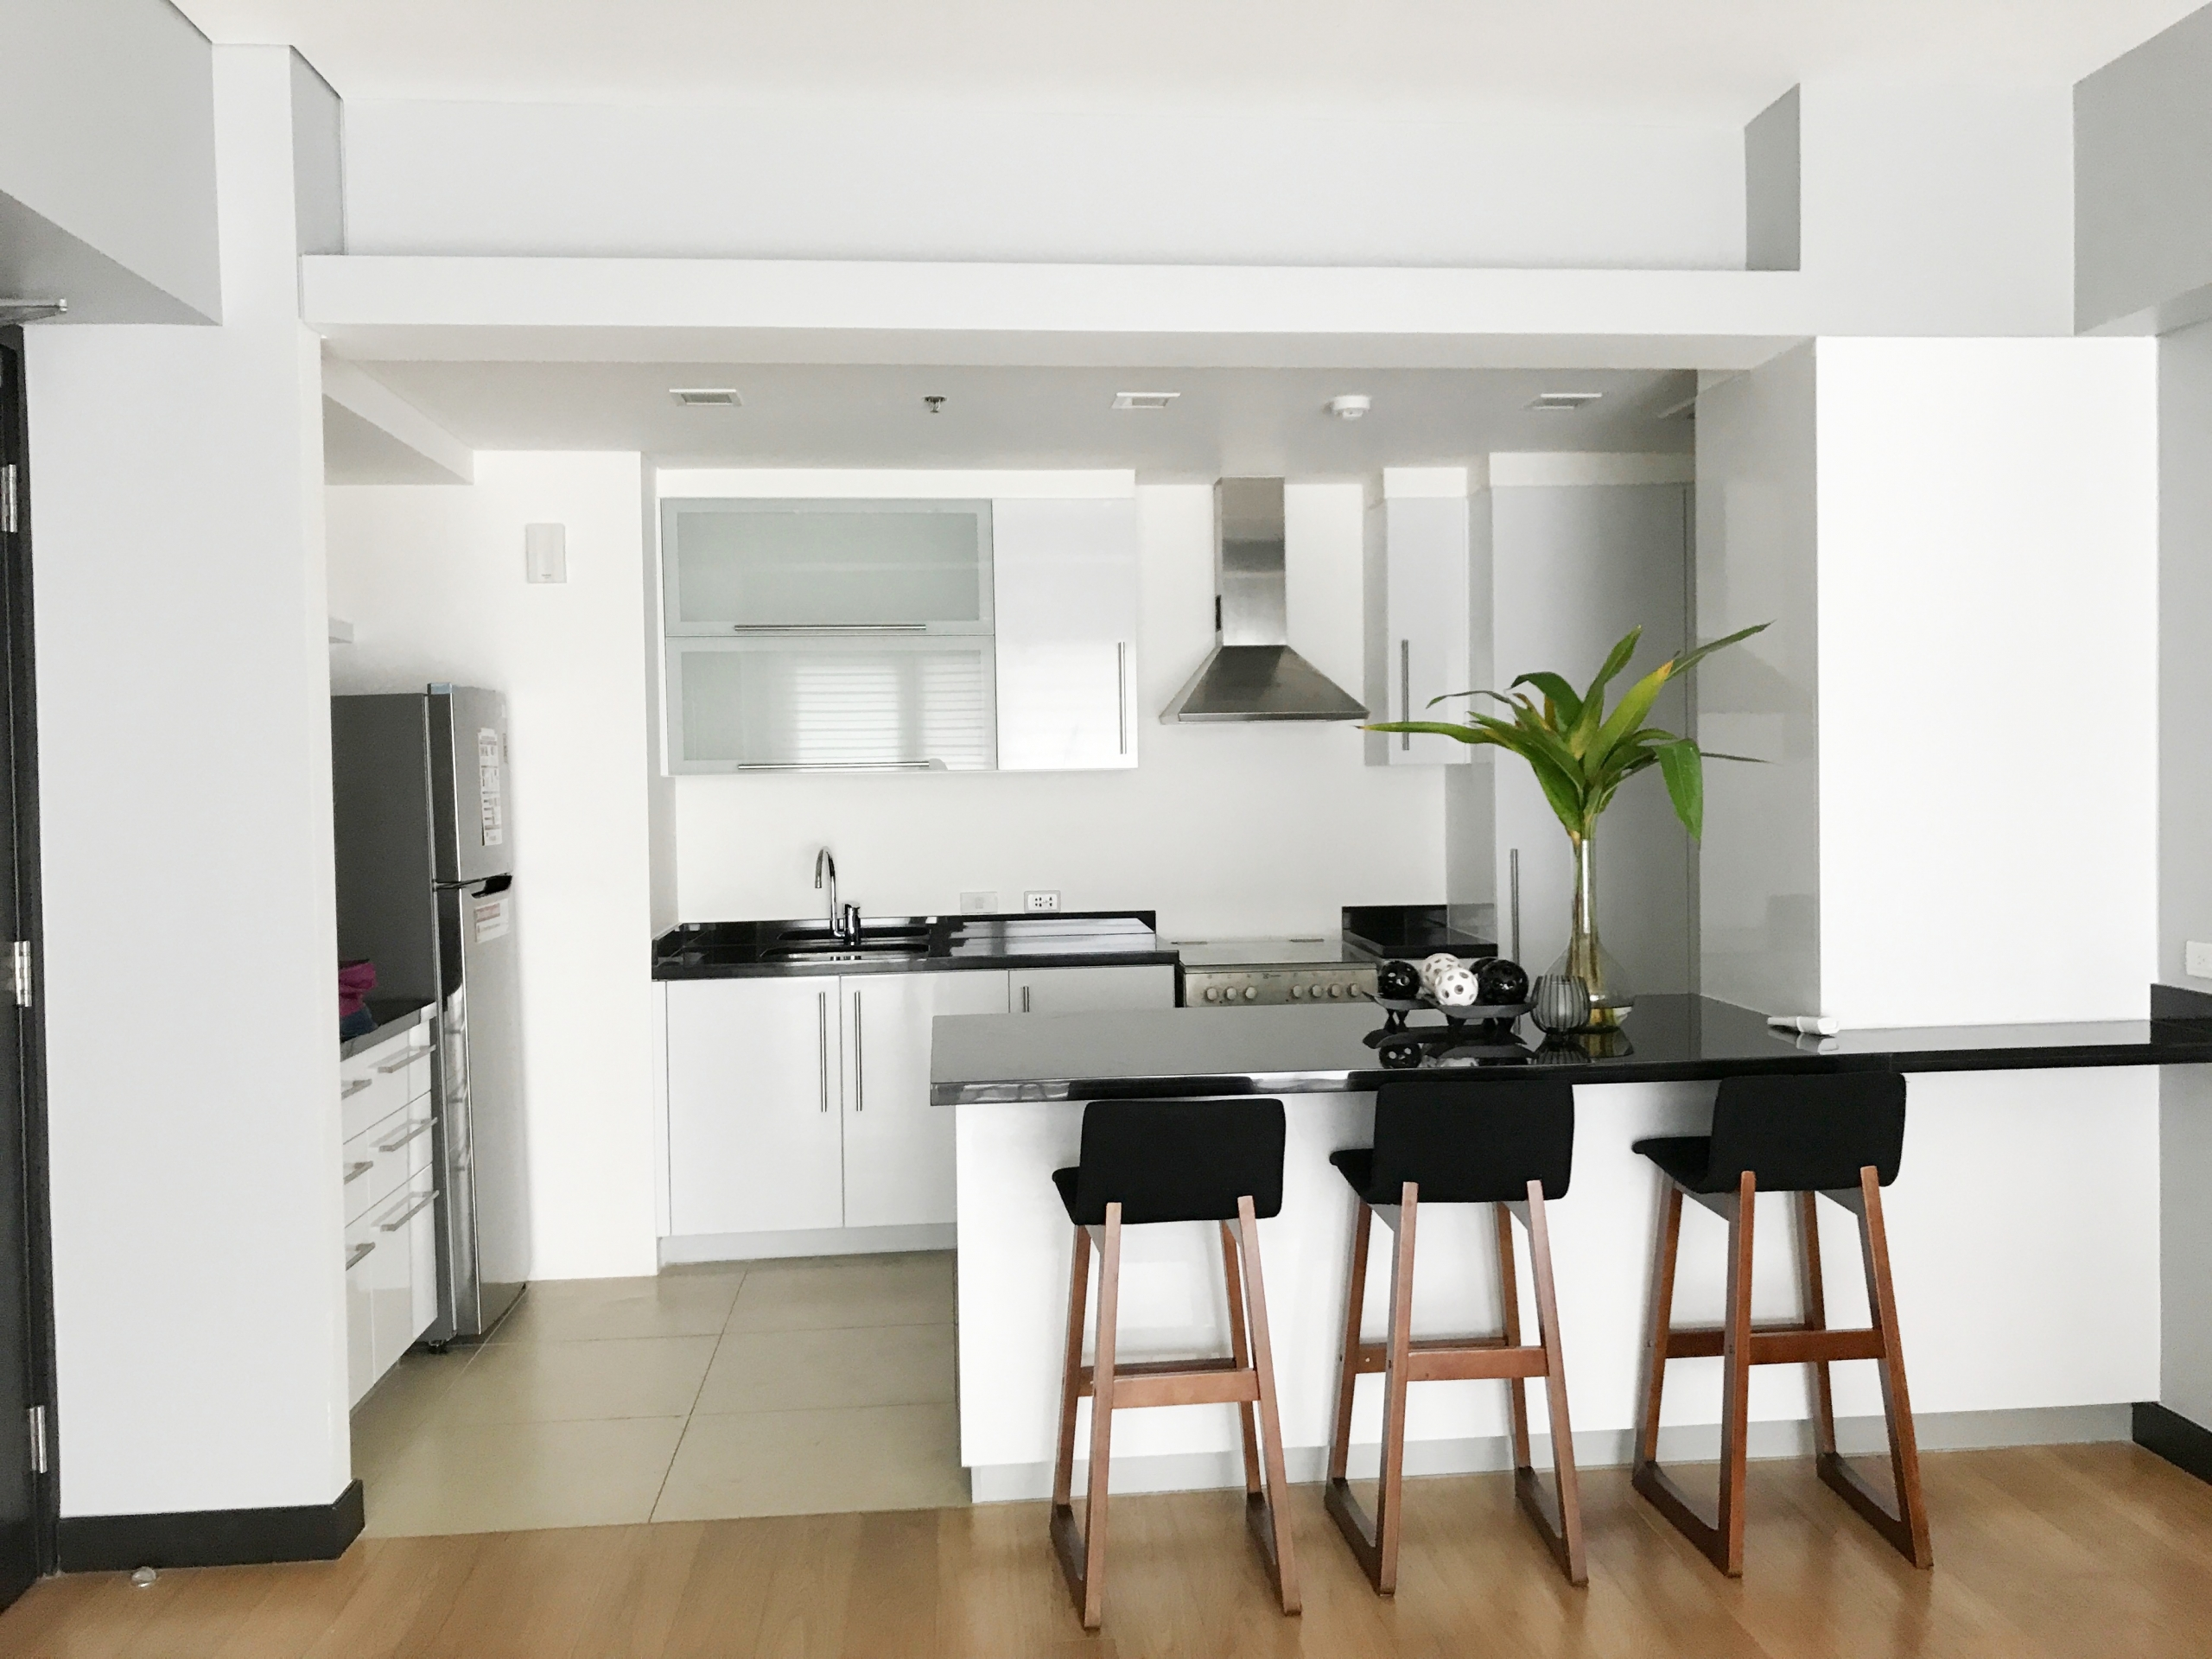 WEST TOWER at One Serendra - Condos for Rent 1 BR